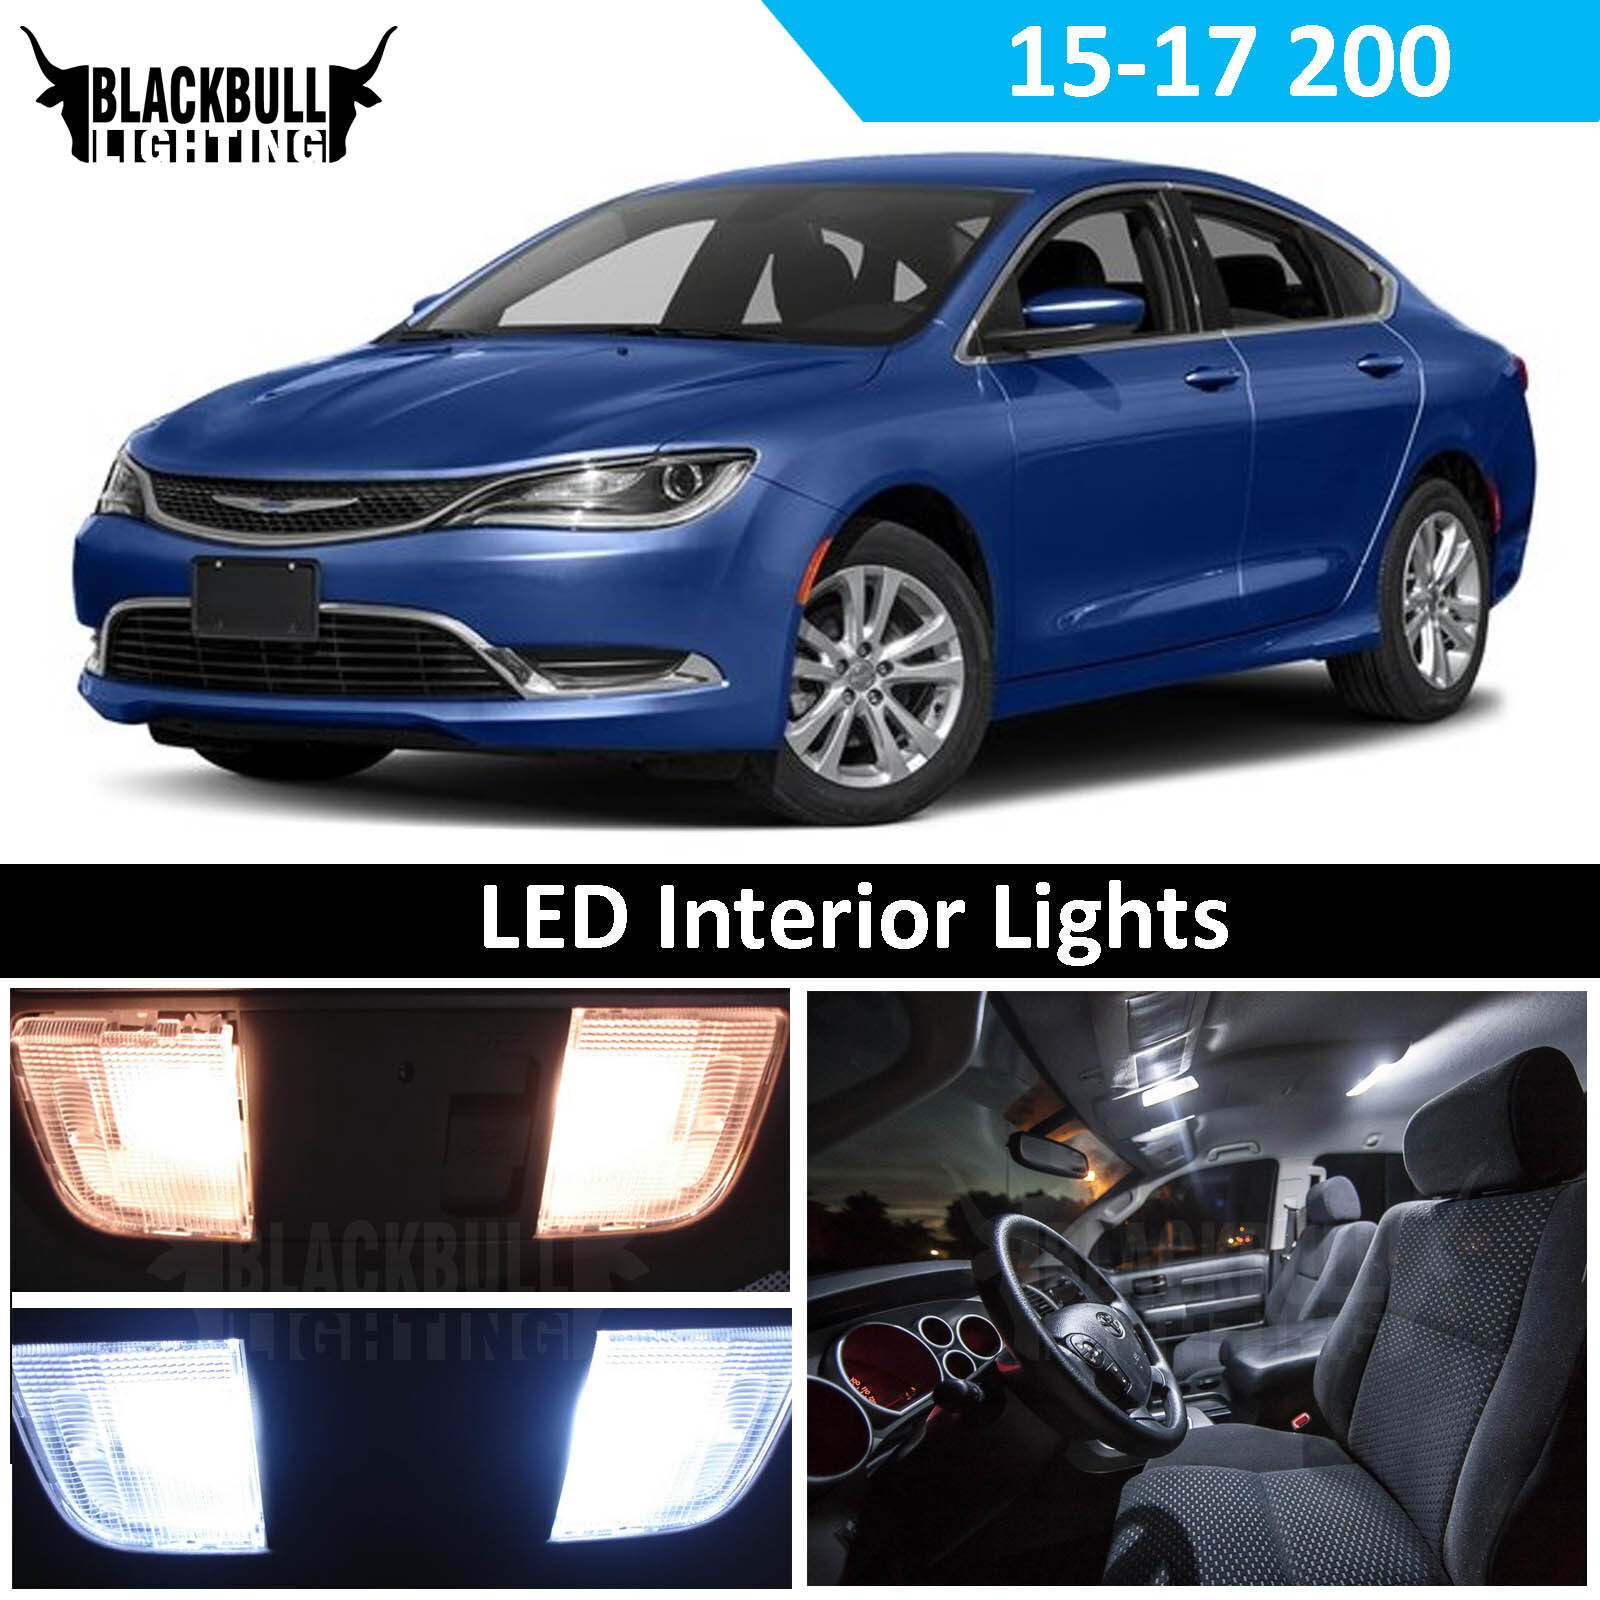 Details About White Led Interior Light Replacement Kit For 2017 Chrysler 200 11 Bulbs